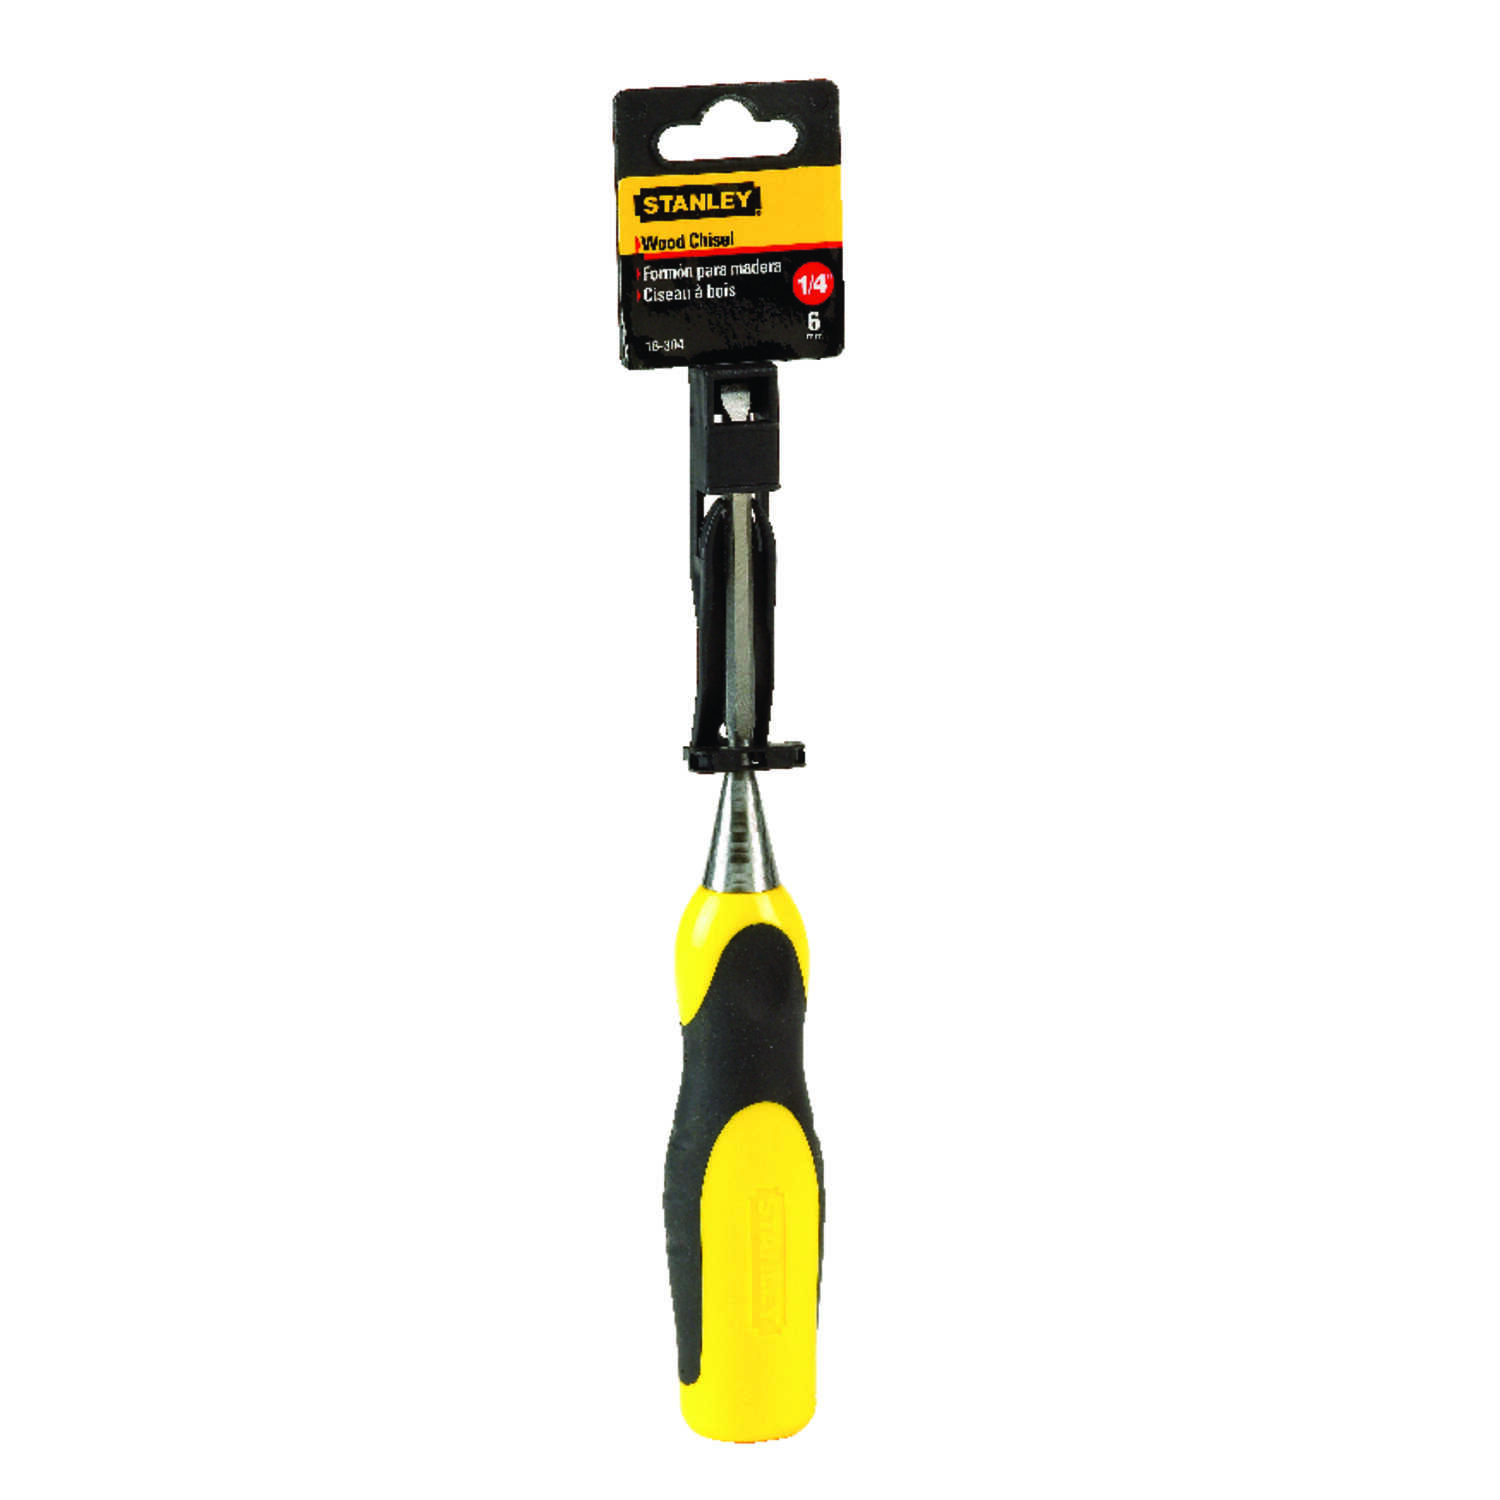 Stanley  1/4 in. W x 9 in. L Steel  Wood Chisel  Yellow  1 each